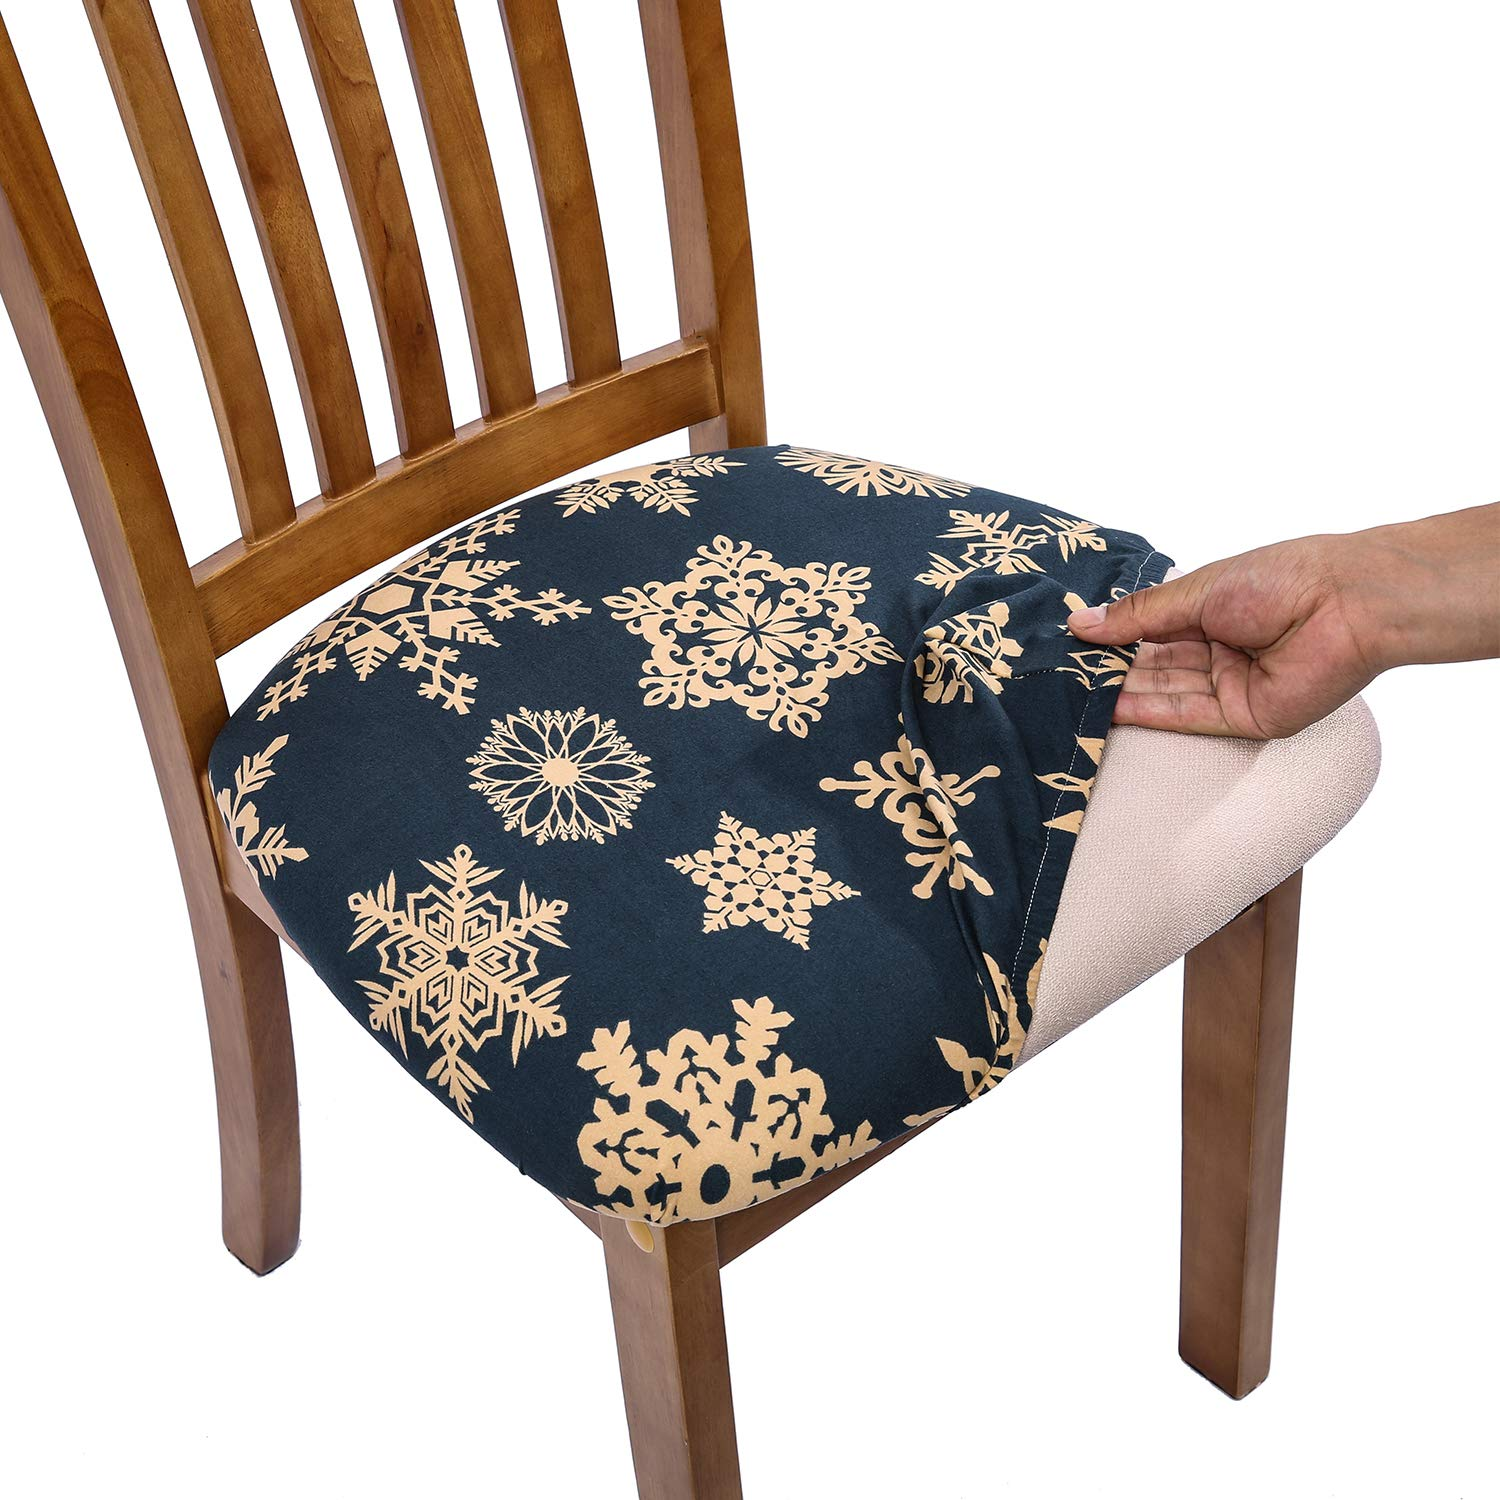 Remarkable Comqualife Stretch Printed Dining Chair Seat Covers Removable Washable Anti Dust Upholstered Chair Seat Cover For Dining Room Kitchen Office Set Alphanode Cool Chair Designs And Ideas Alphanodeonline